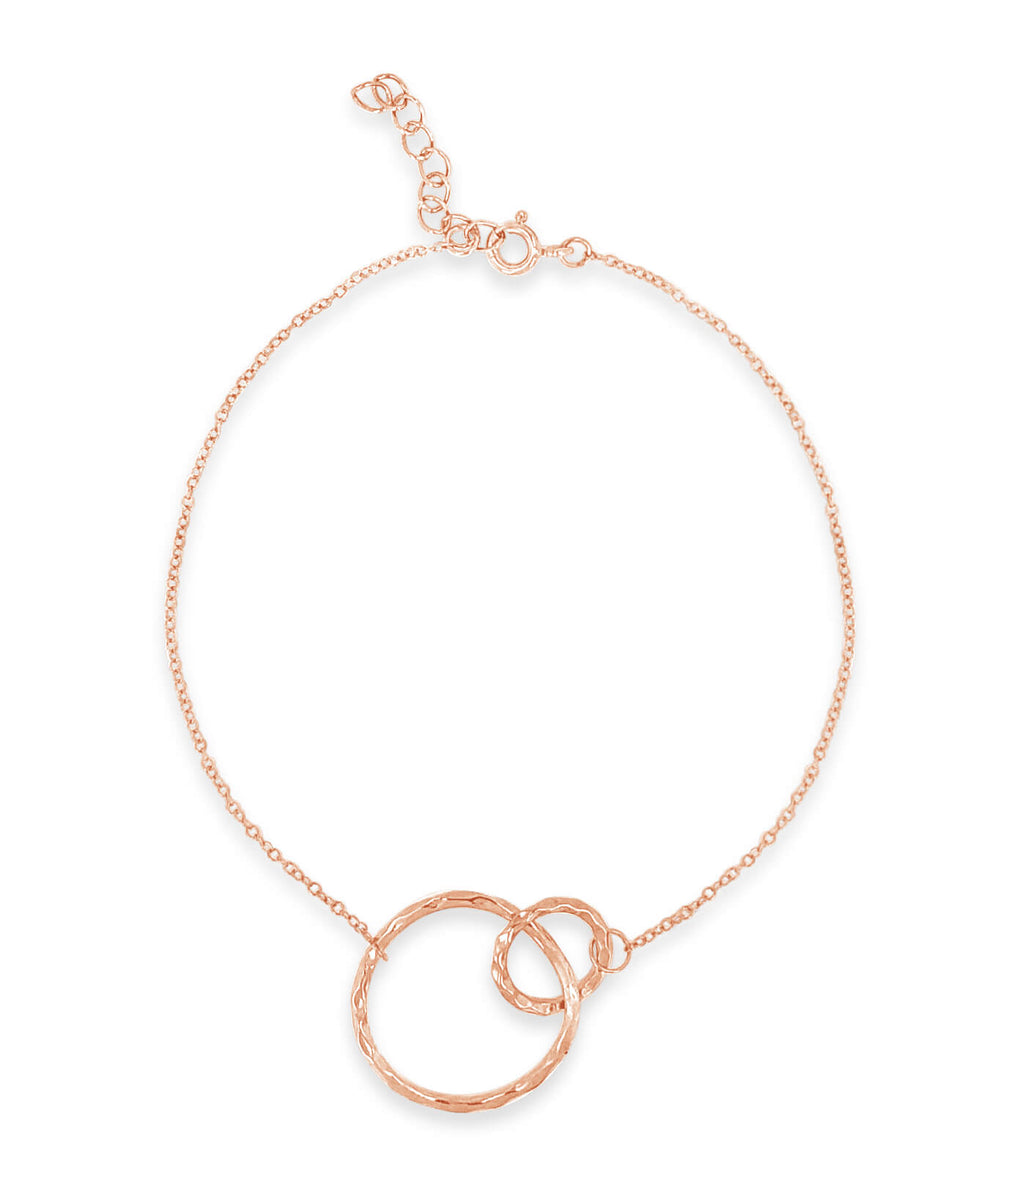 Two circle bracelet in rose gold | Little Sparkles Jewelry